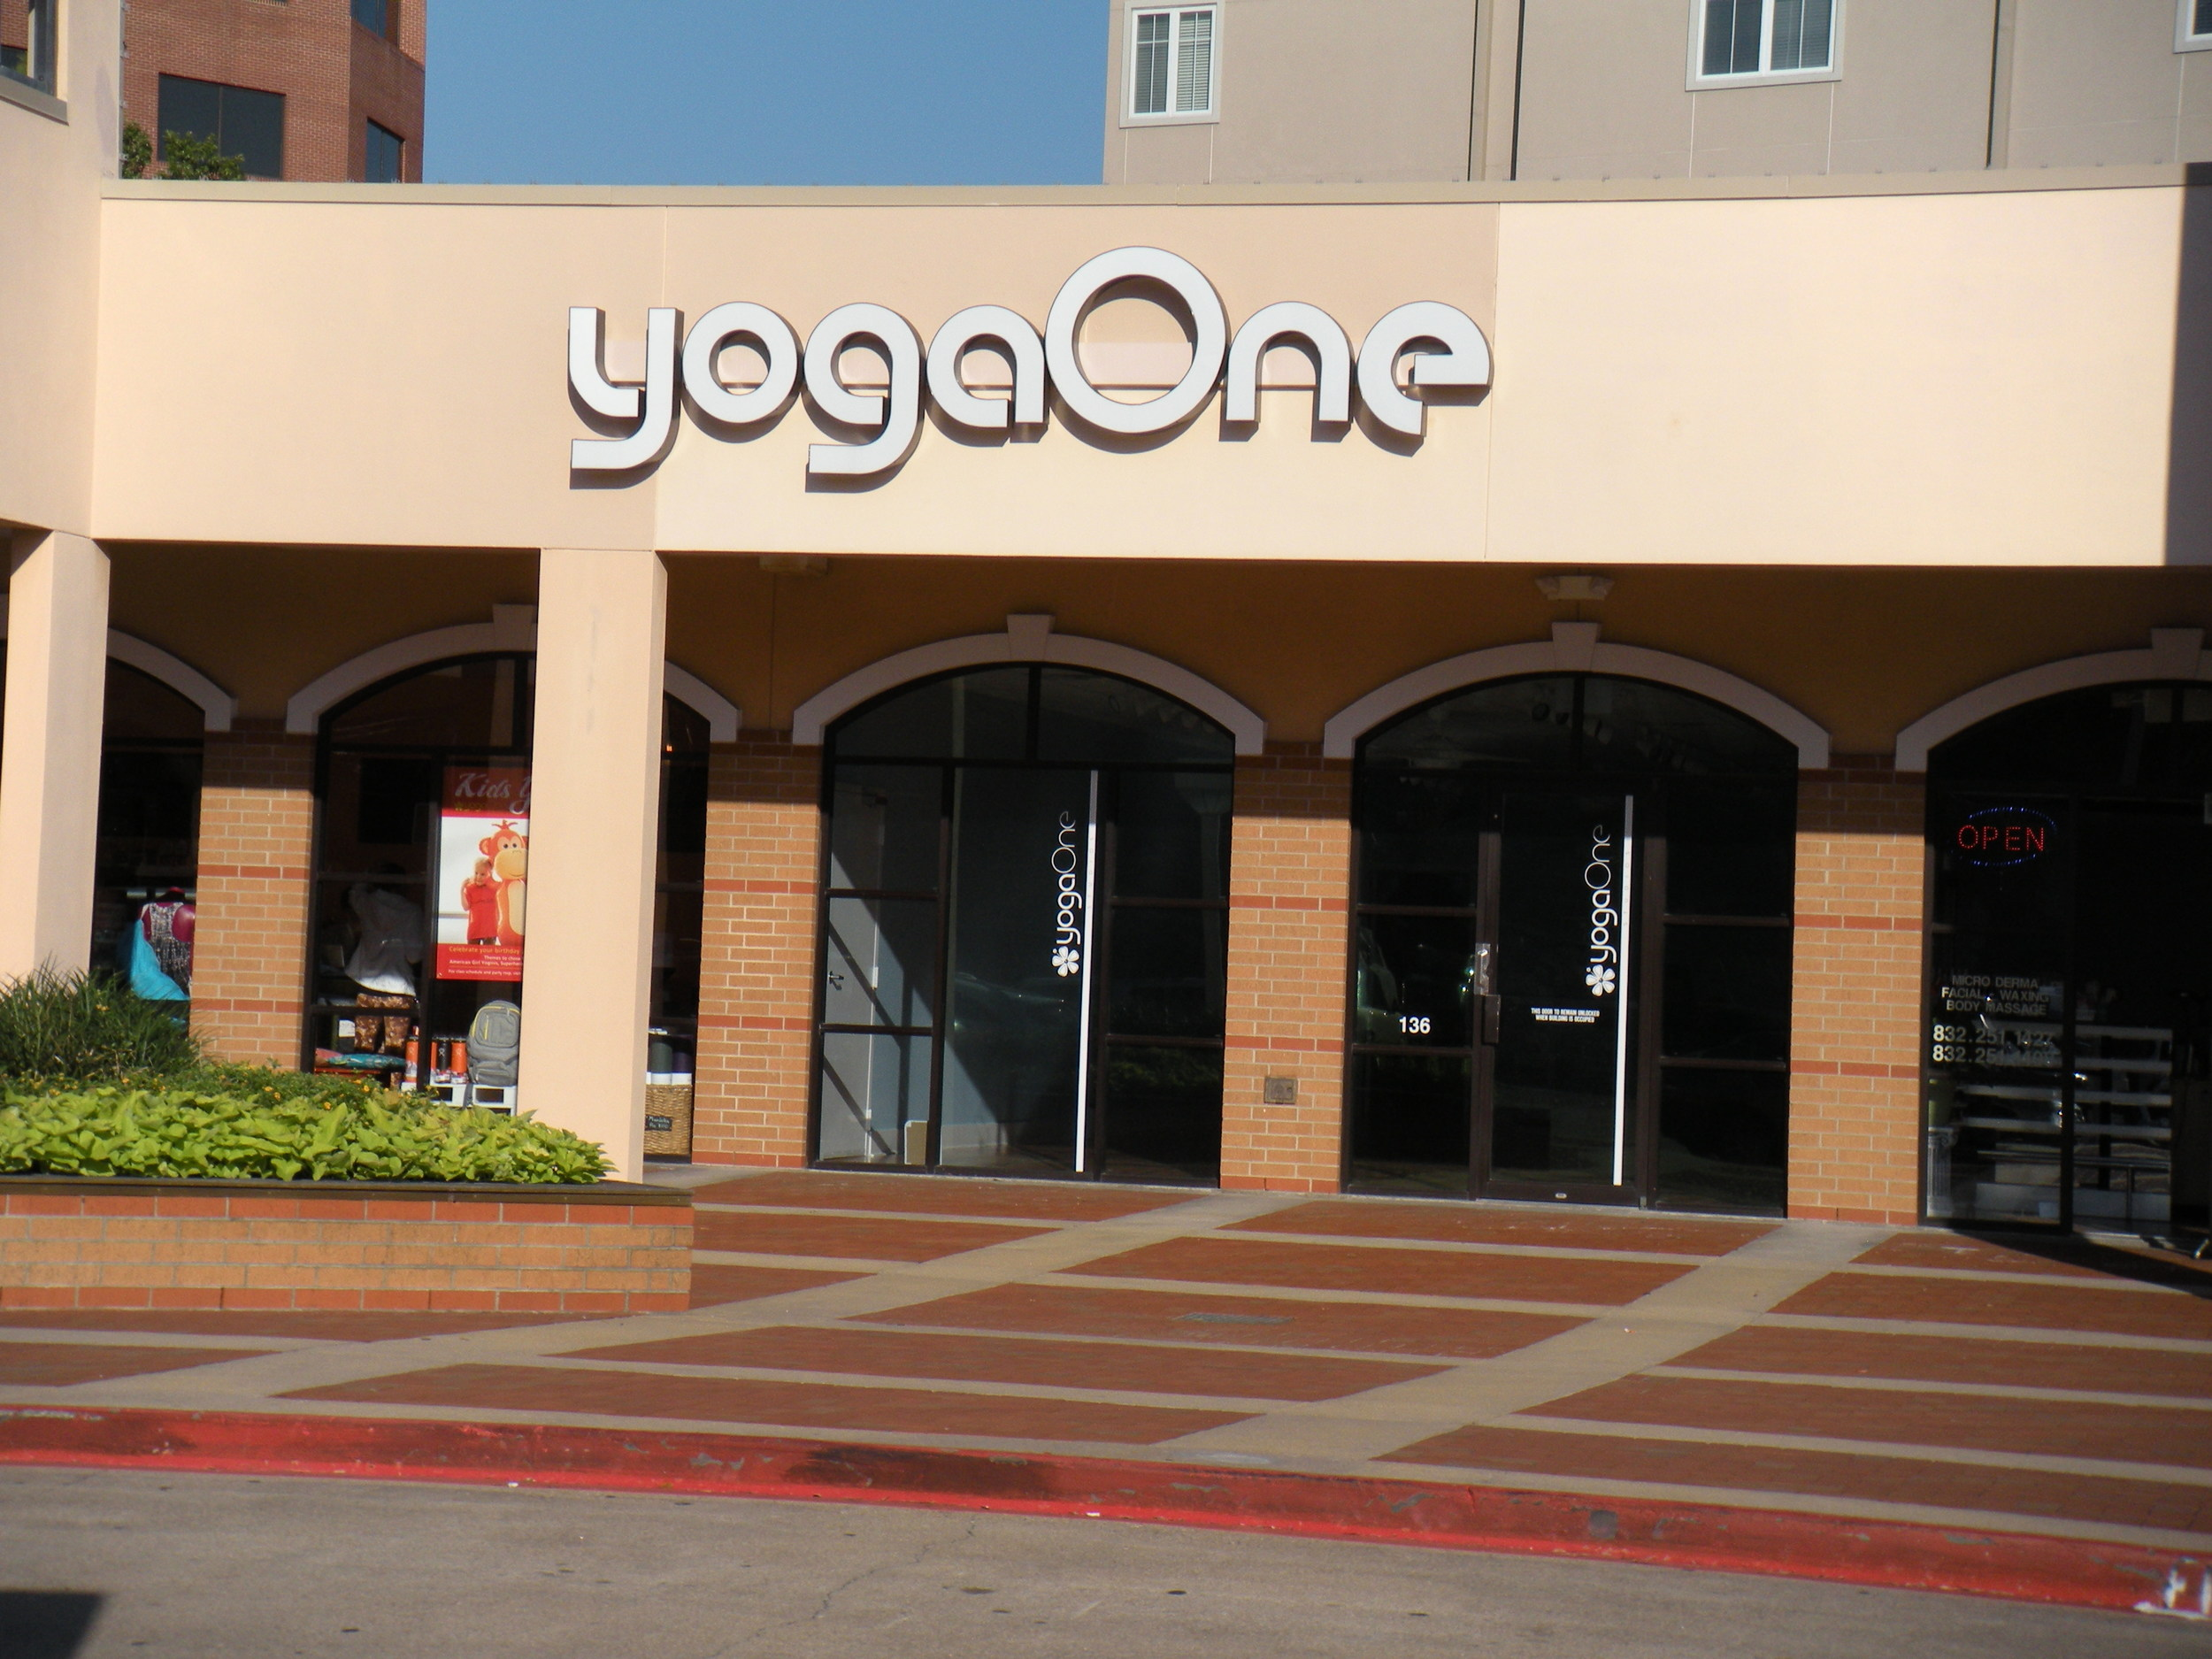 Here's the yoga studio, at Bering and Woodway.